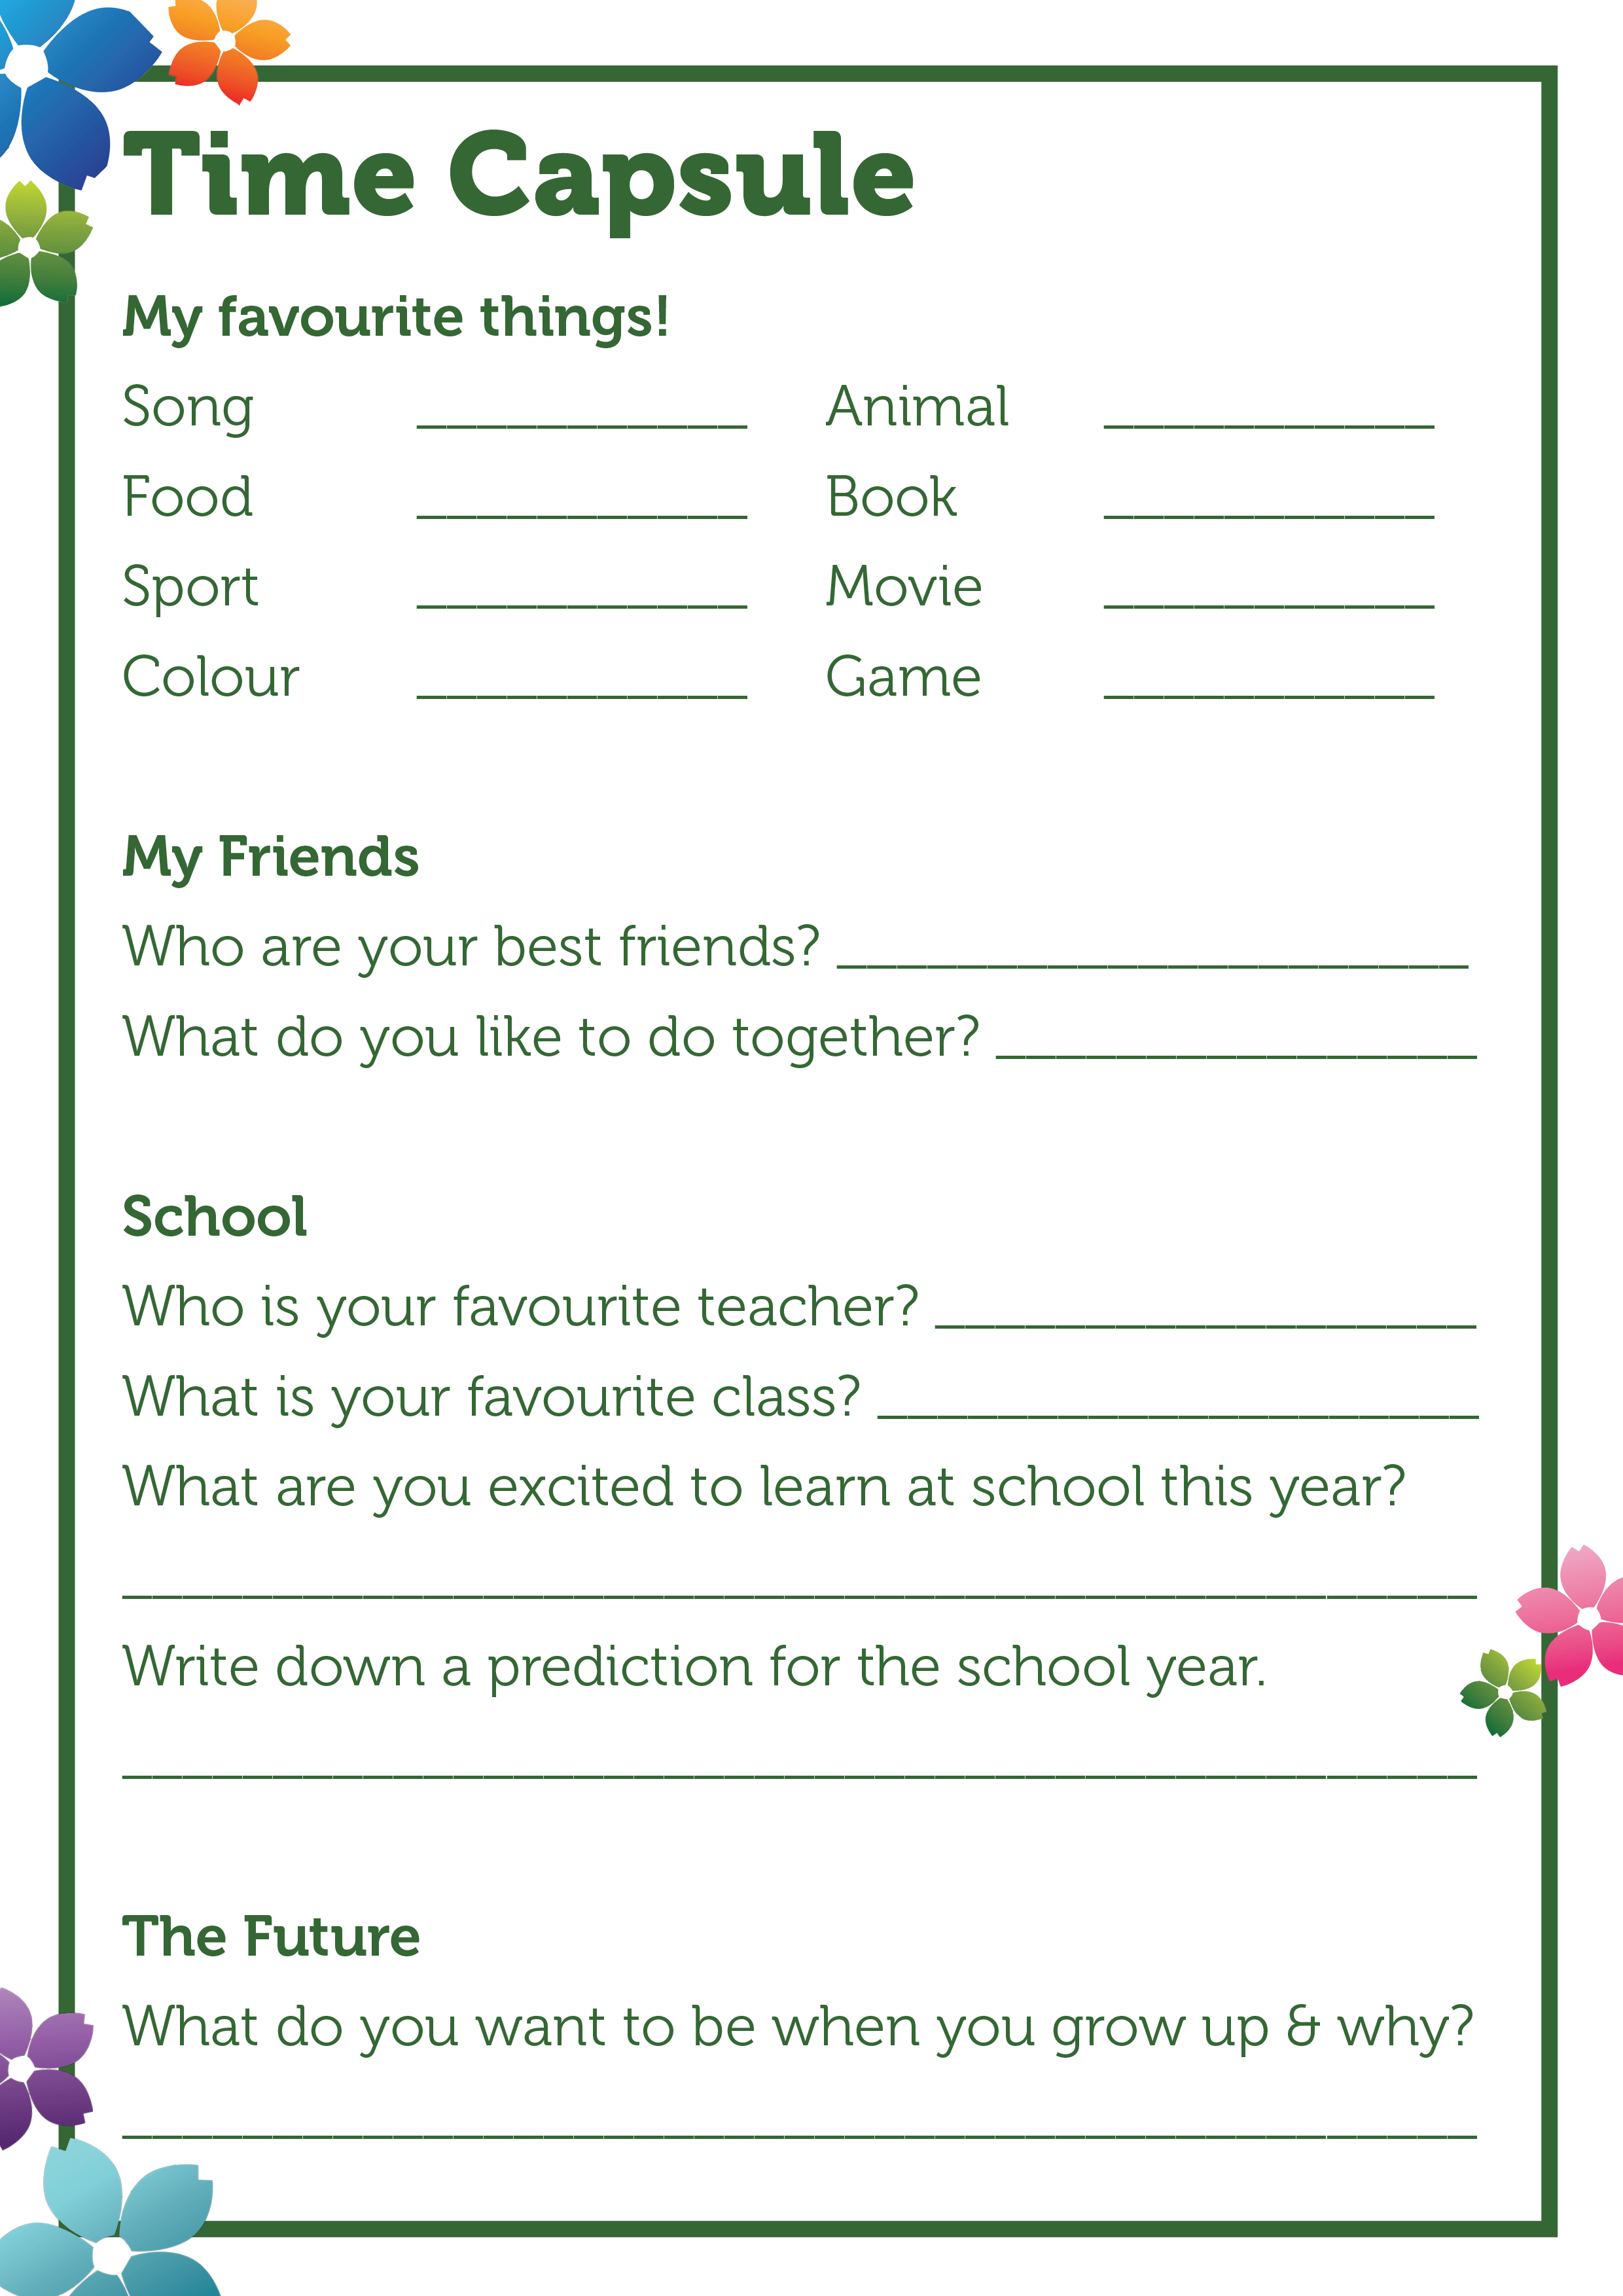 Back to school time capsule activity